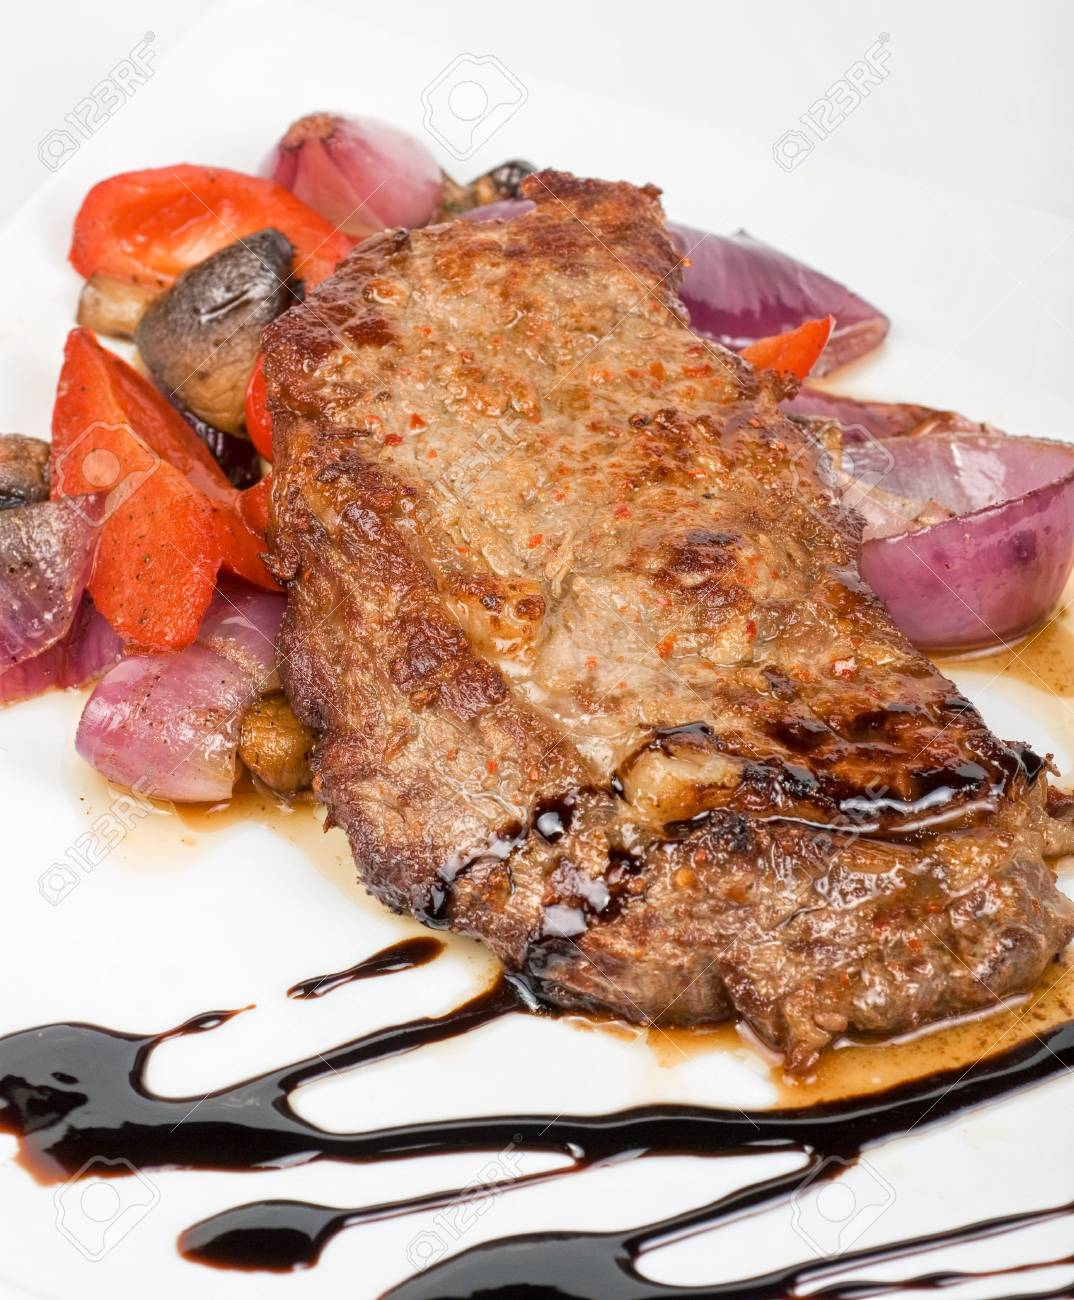 Grilled beef steak with vegetable closeup at plate Stock Photo - 6870965